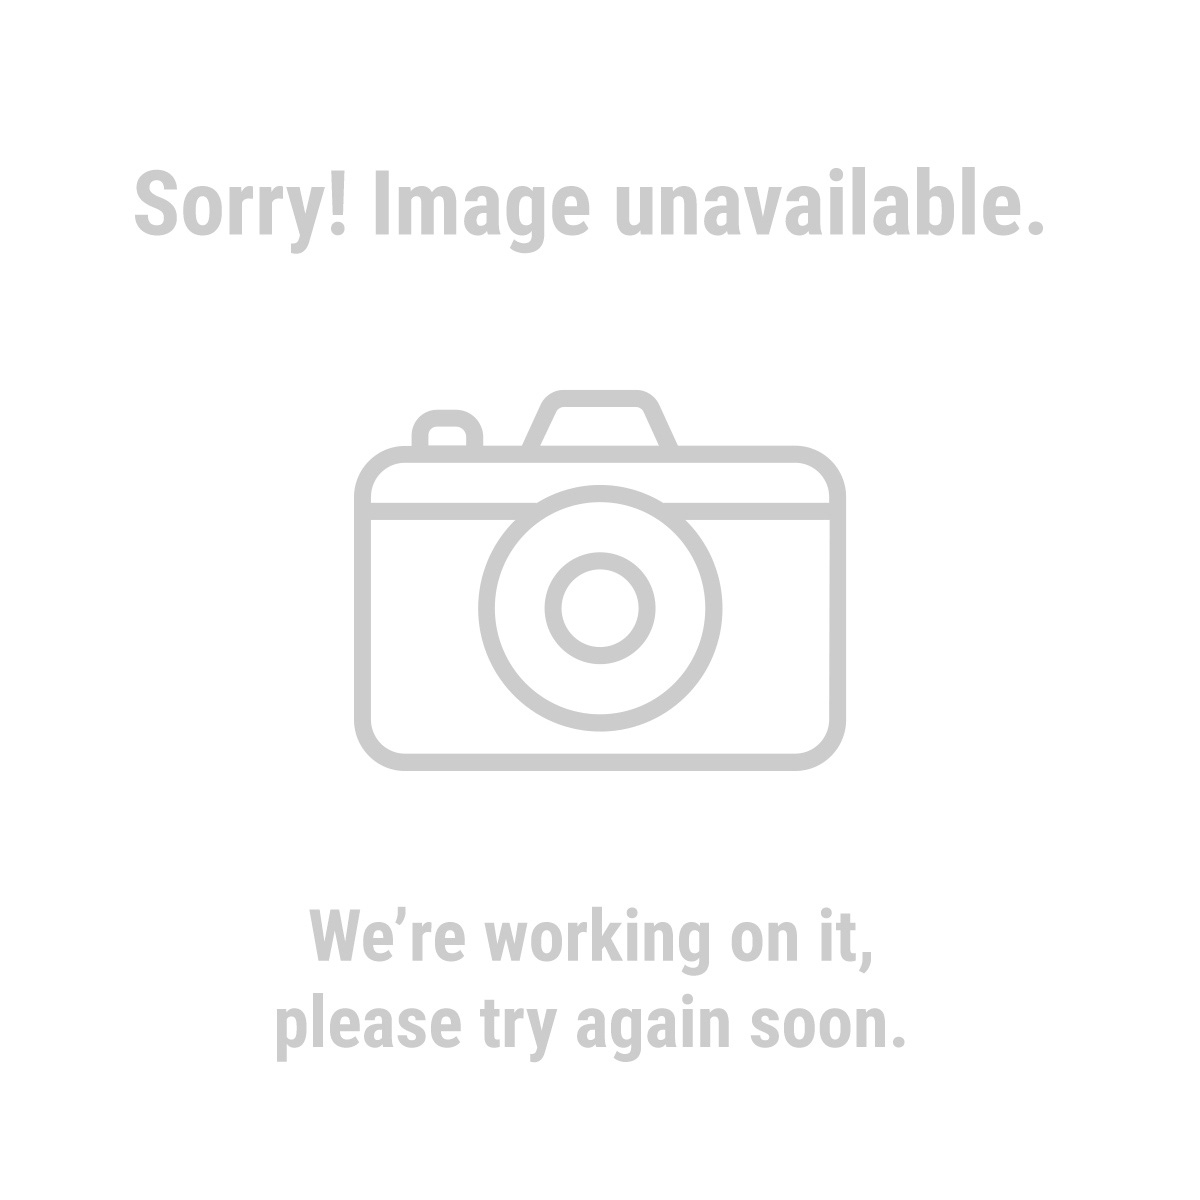 8 Piece 3/8 in. Drive SAE Deep Wall Impact Socket Set